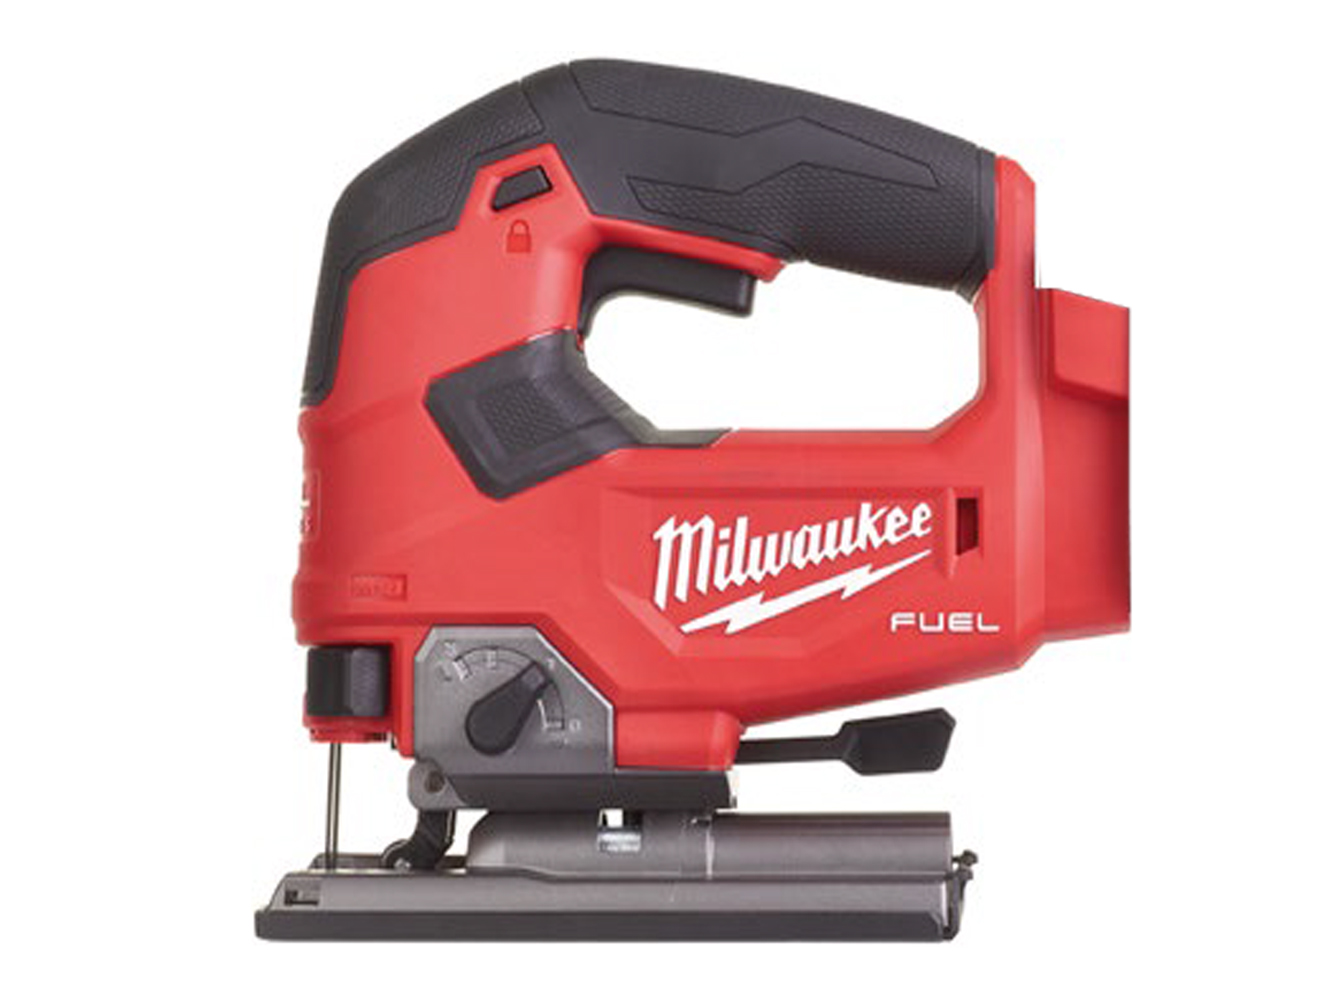 Milwaukee M18FJS 18V Fuel Jigsaw With Top-Handle and 5 Stage Pendulum Action - Body Only